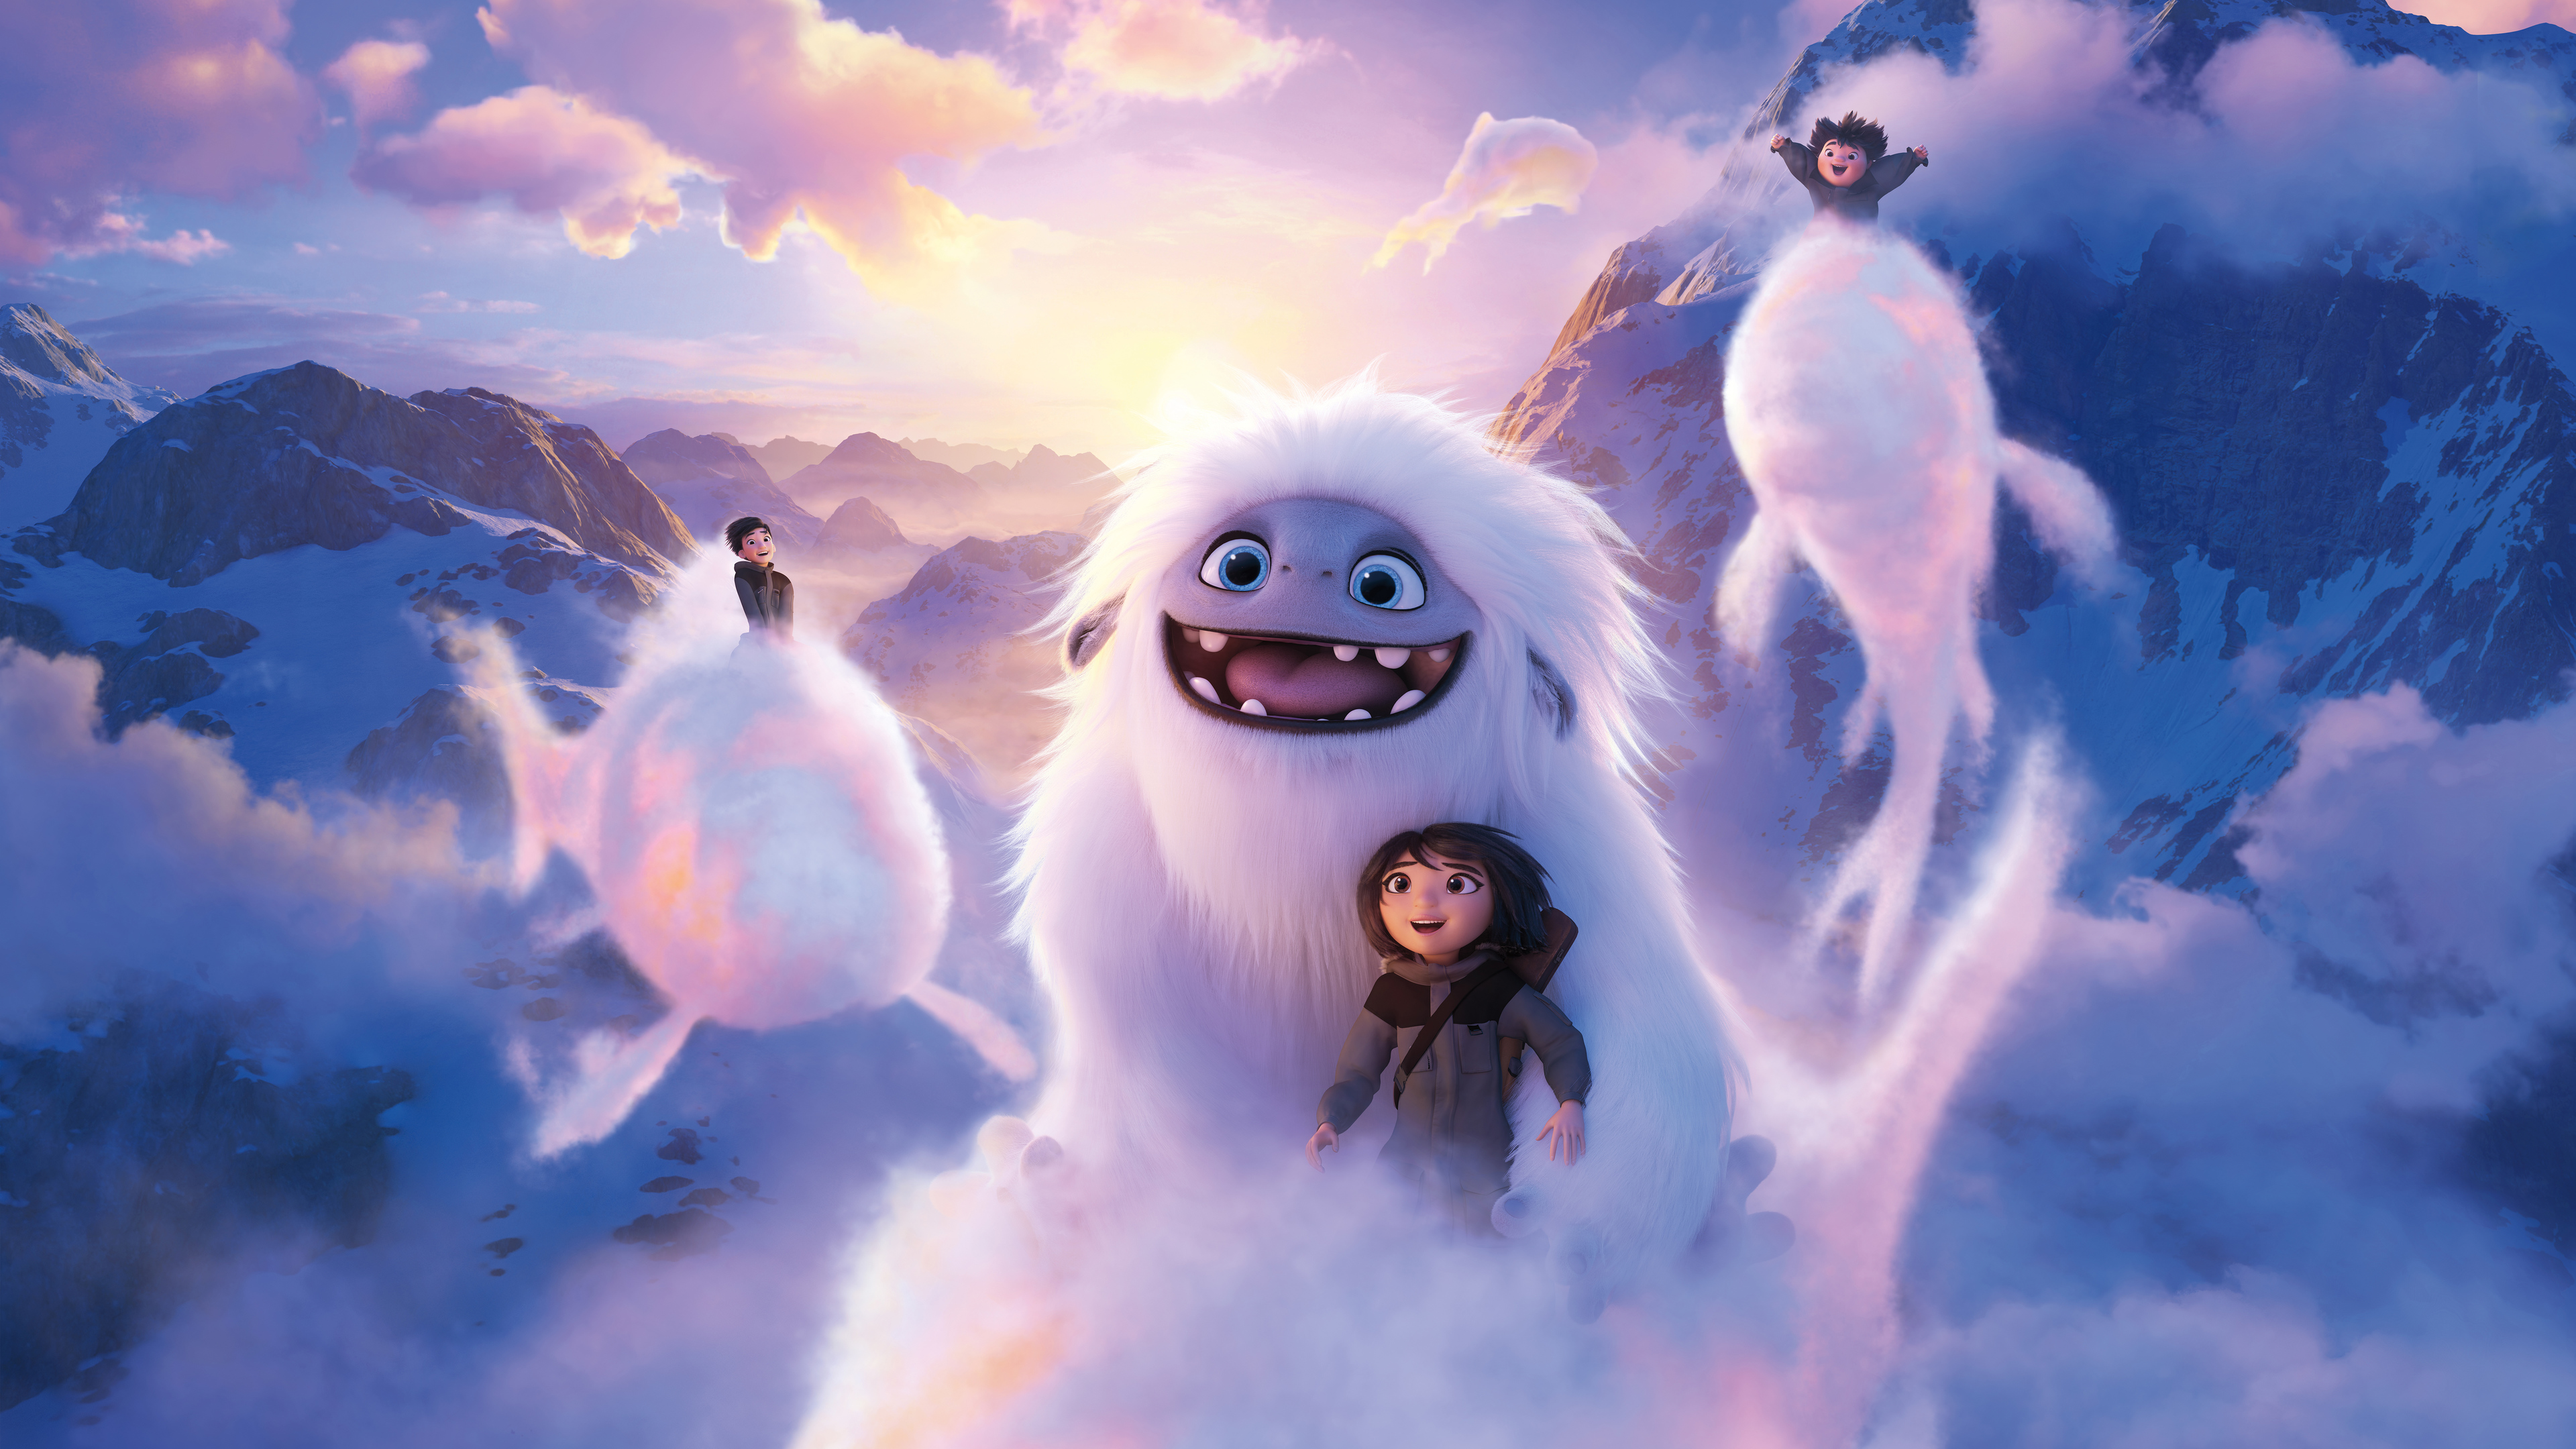 Wallpaper 4k 2019 Abominable Movie 2019 Movies Wallpapers 4k Wallpapers 5k Wallpapers 8k Wallpapers Abominable Wallpapers Animated Movies Wallpapers Hd Wallpapers